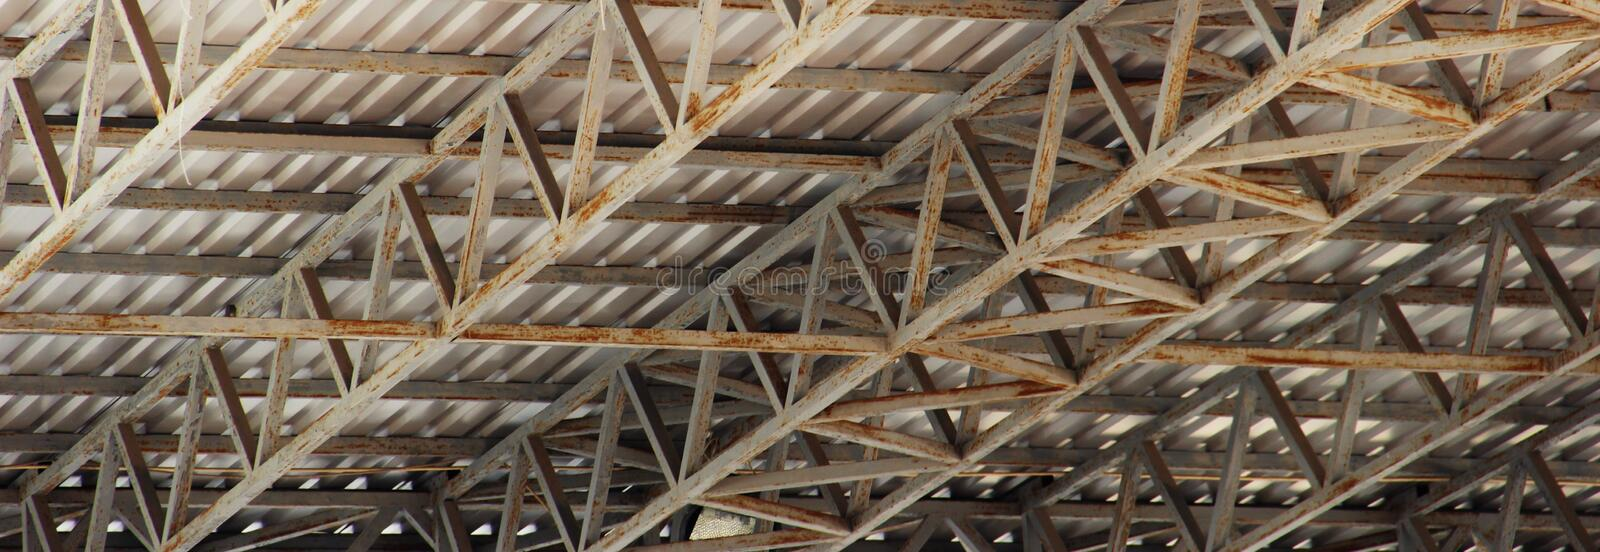 Structural steel beam on roof of building residential construction royalty free stock photos